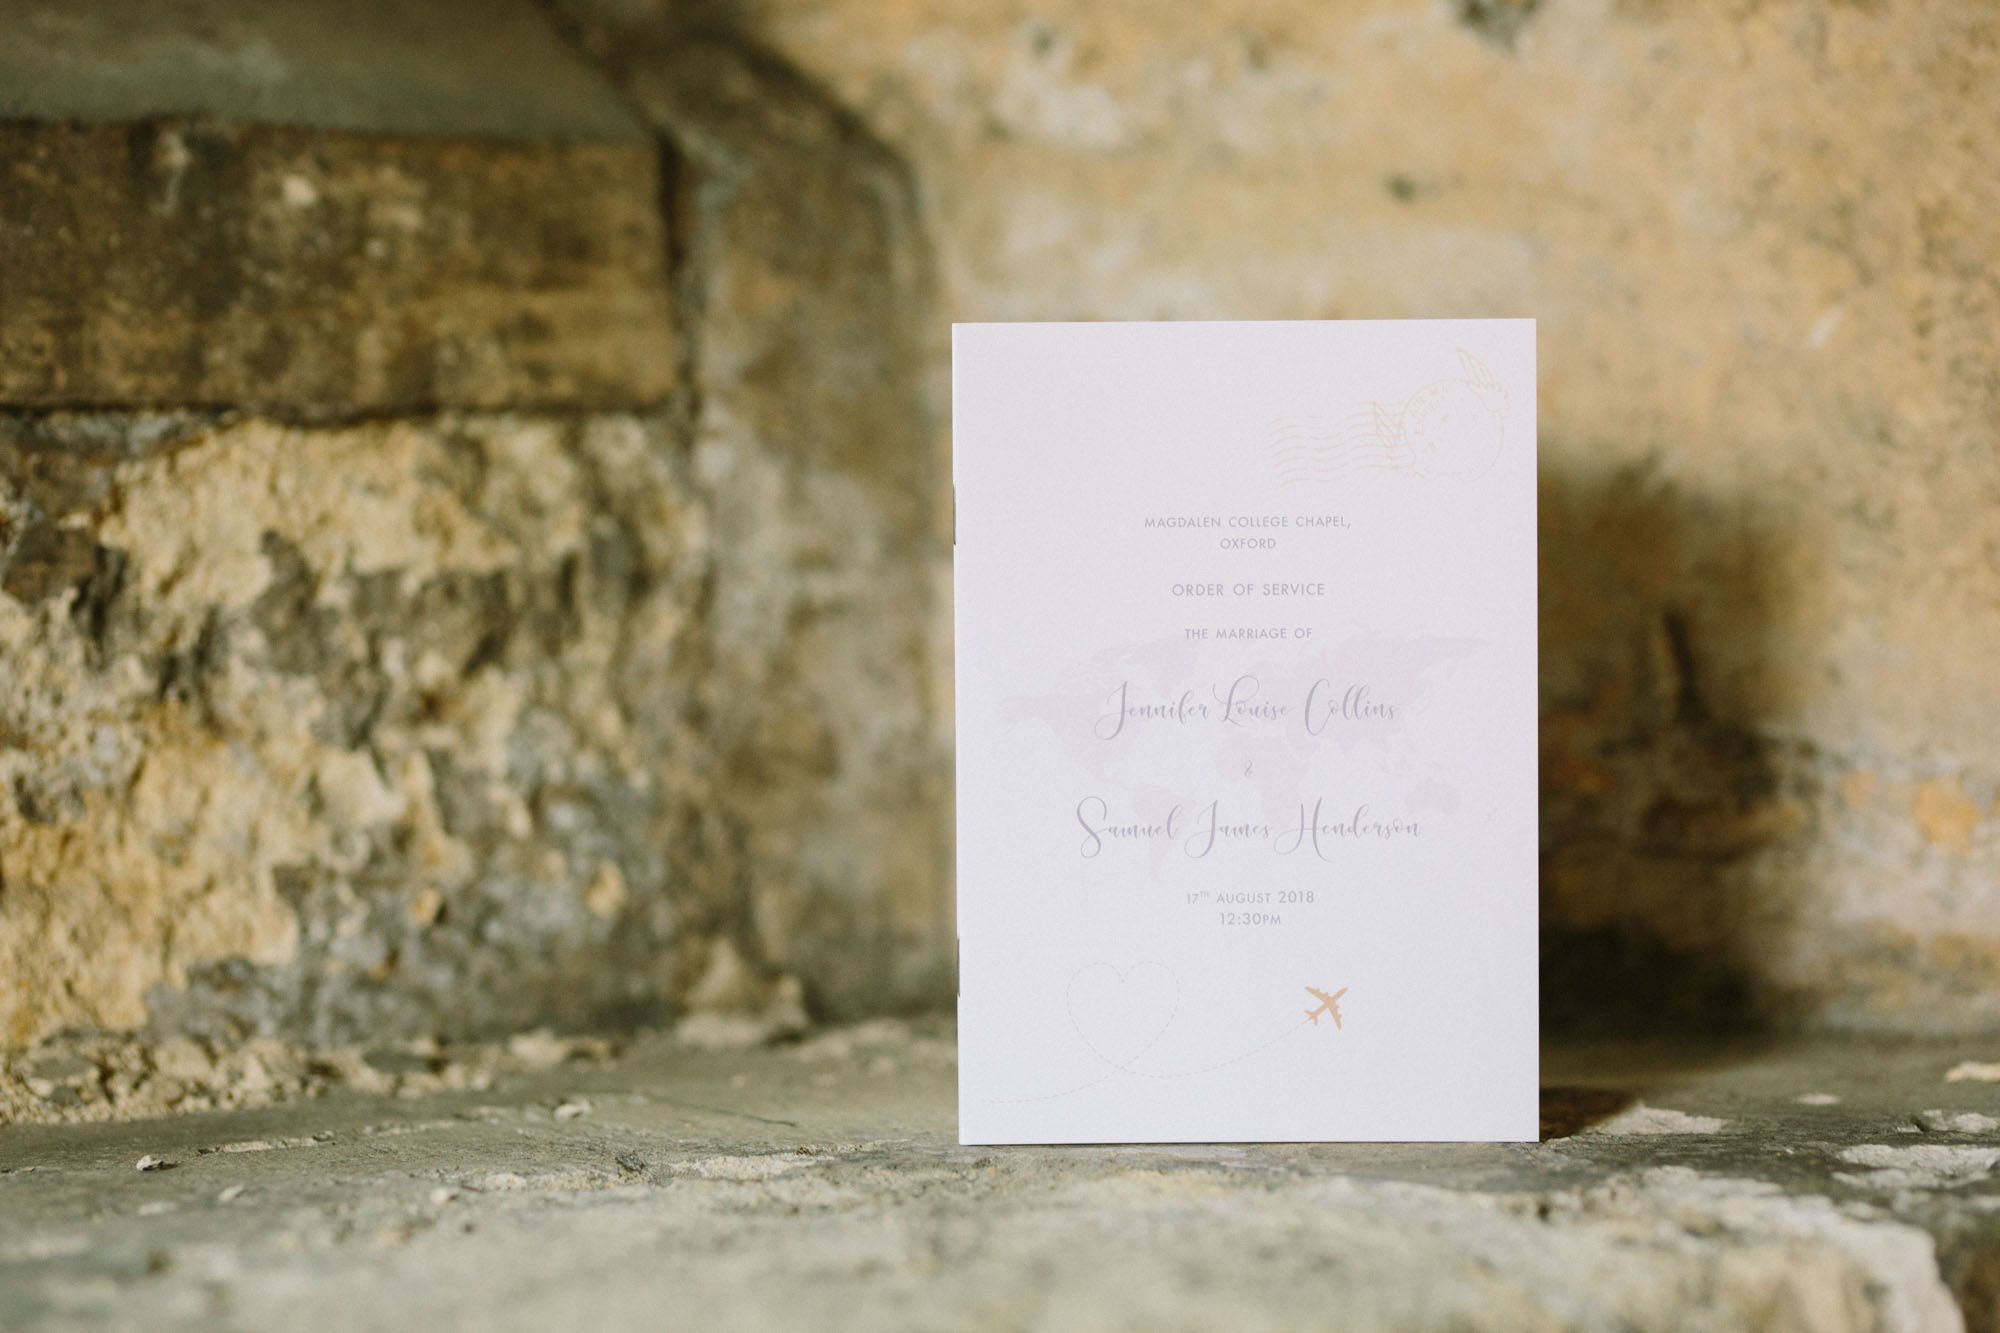 Wedding order of service with elegant calligraphy on stone ledge in Magdalen College Oxford